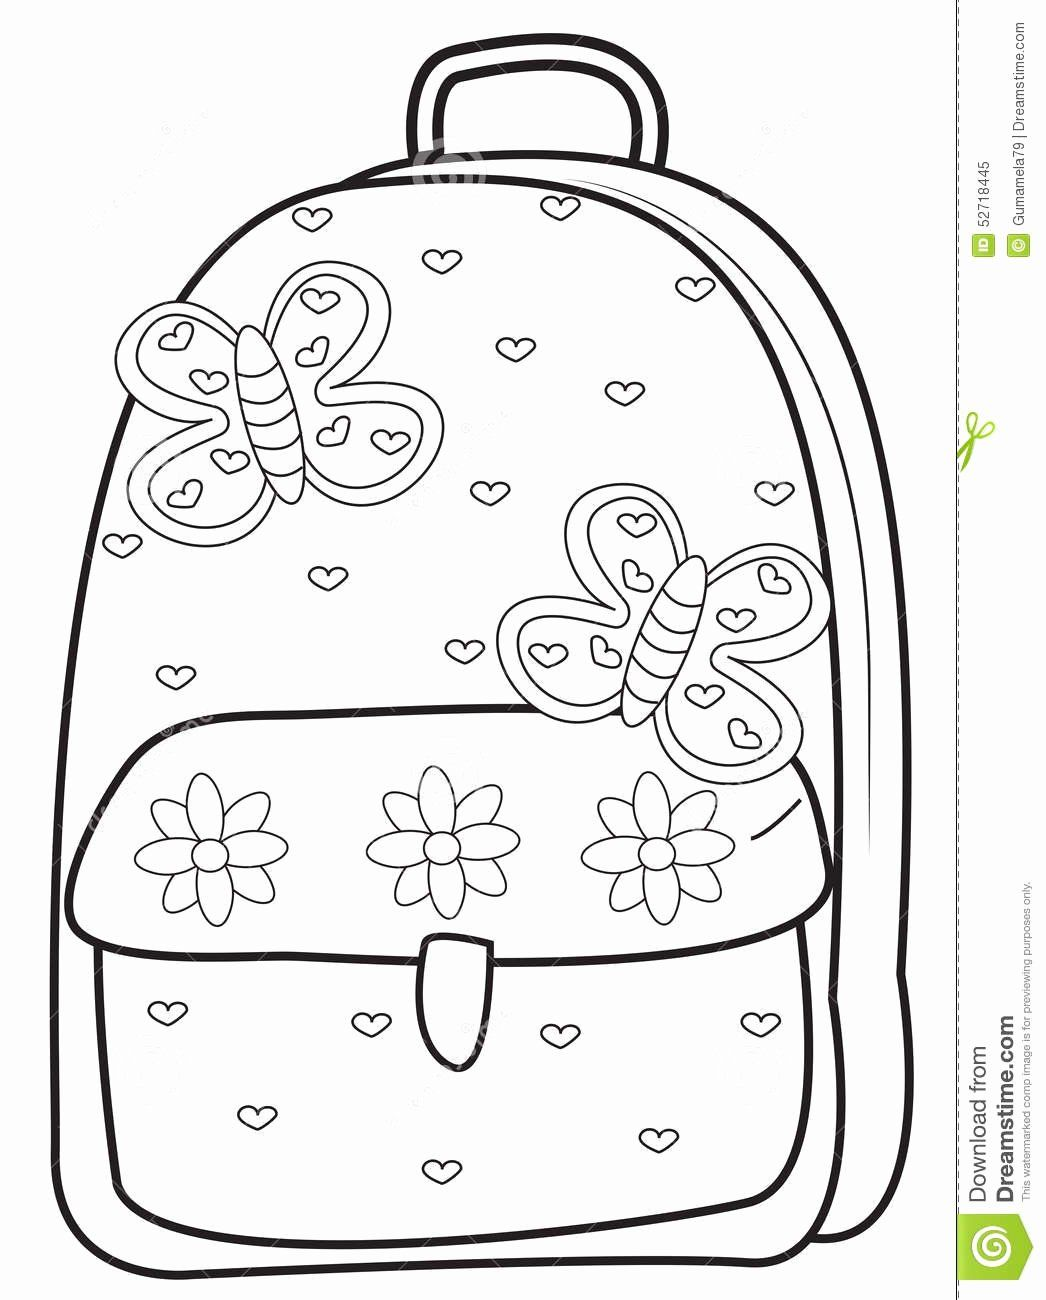 Sailing Boat Coloring Pages Best Of Purse Coloring Pages For Kids